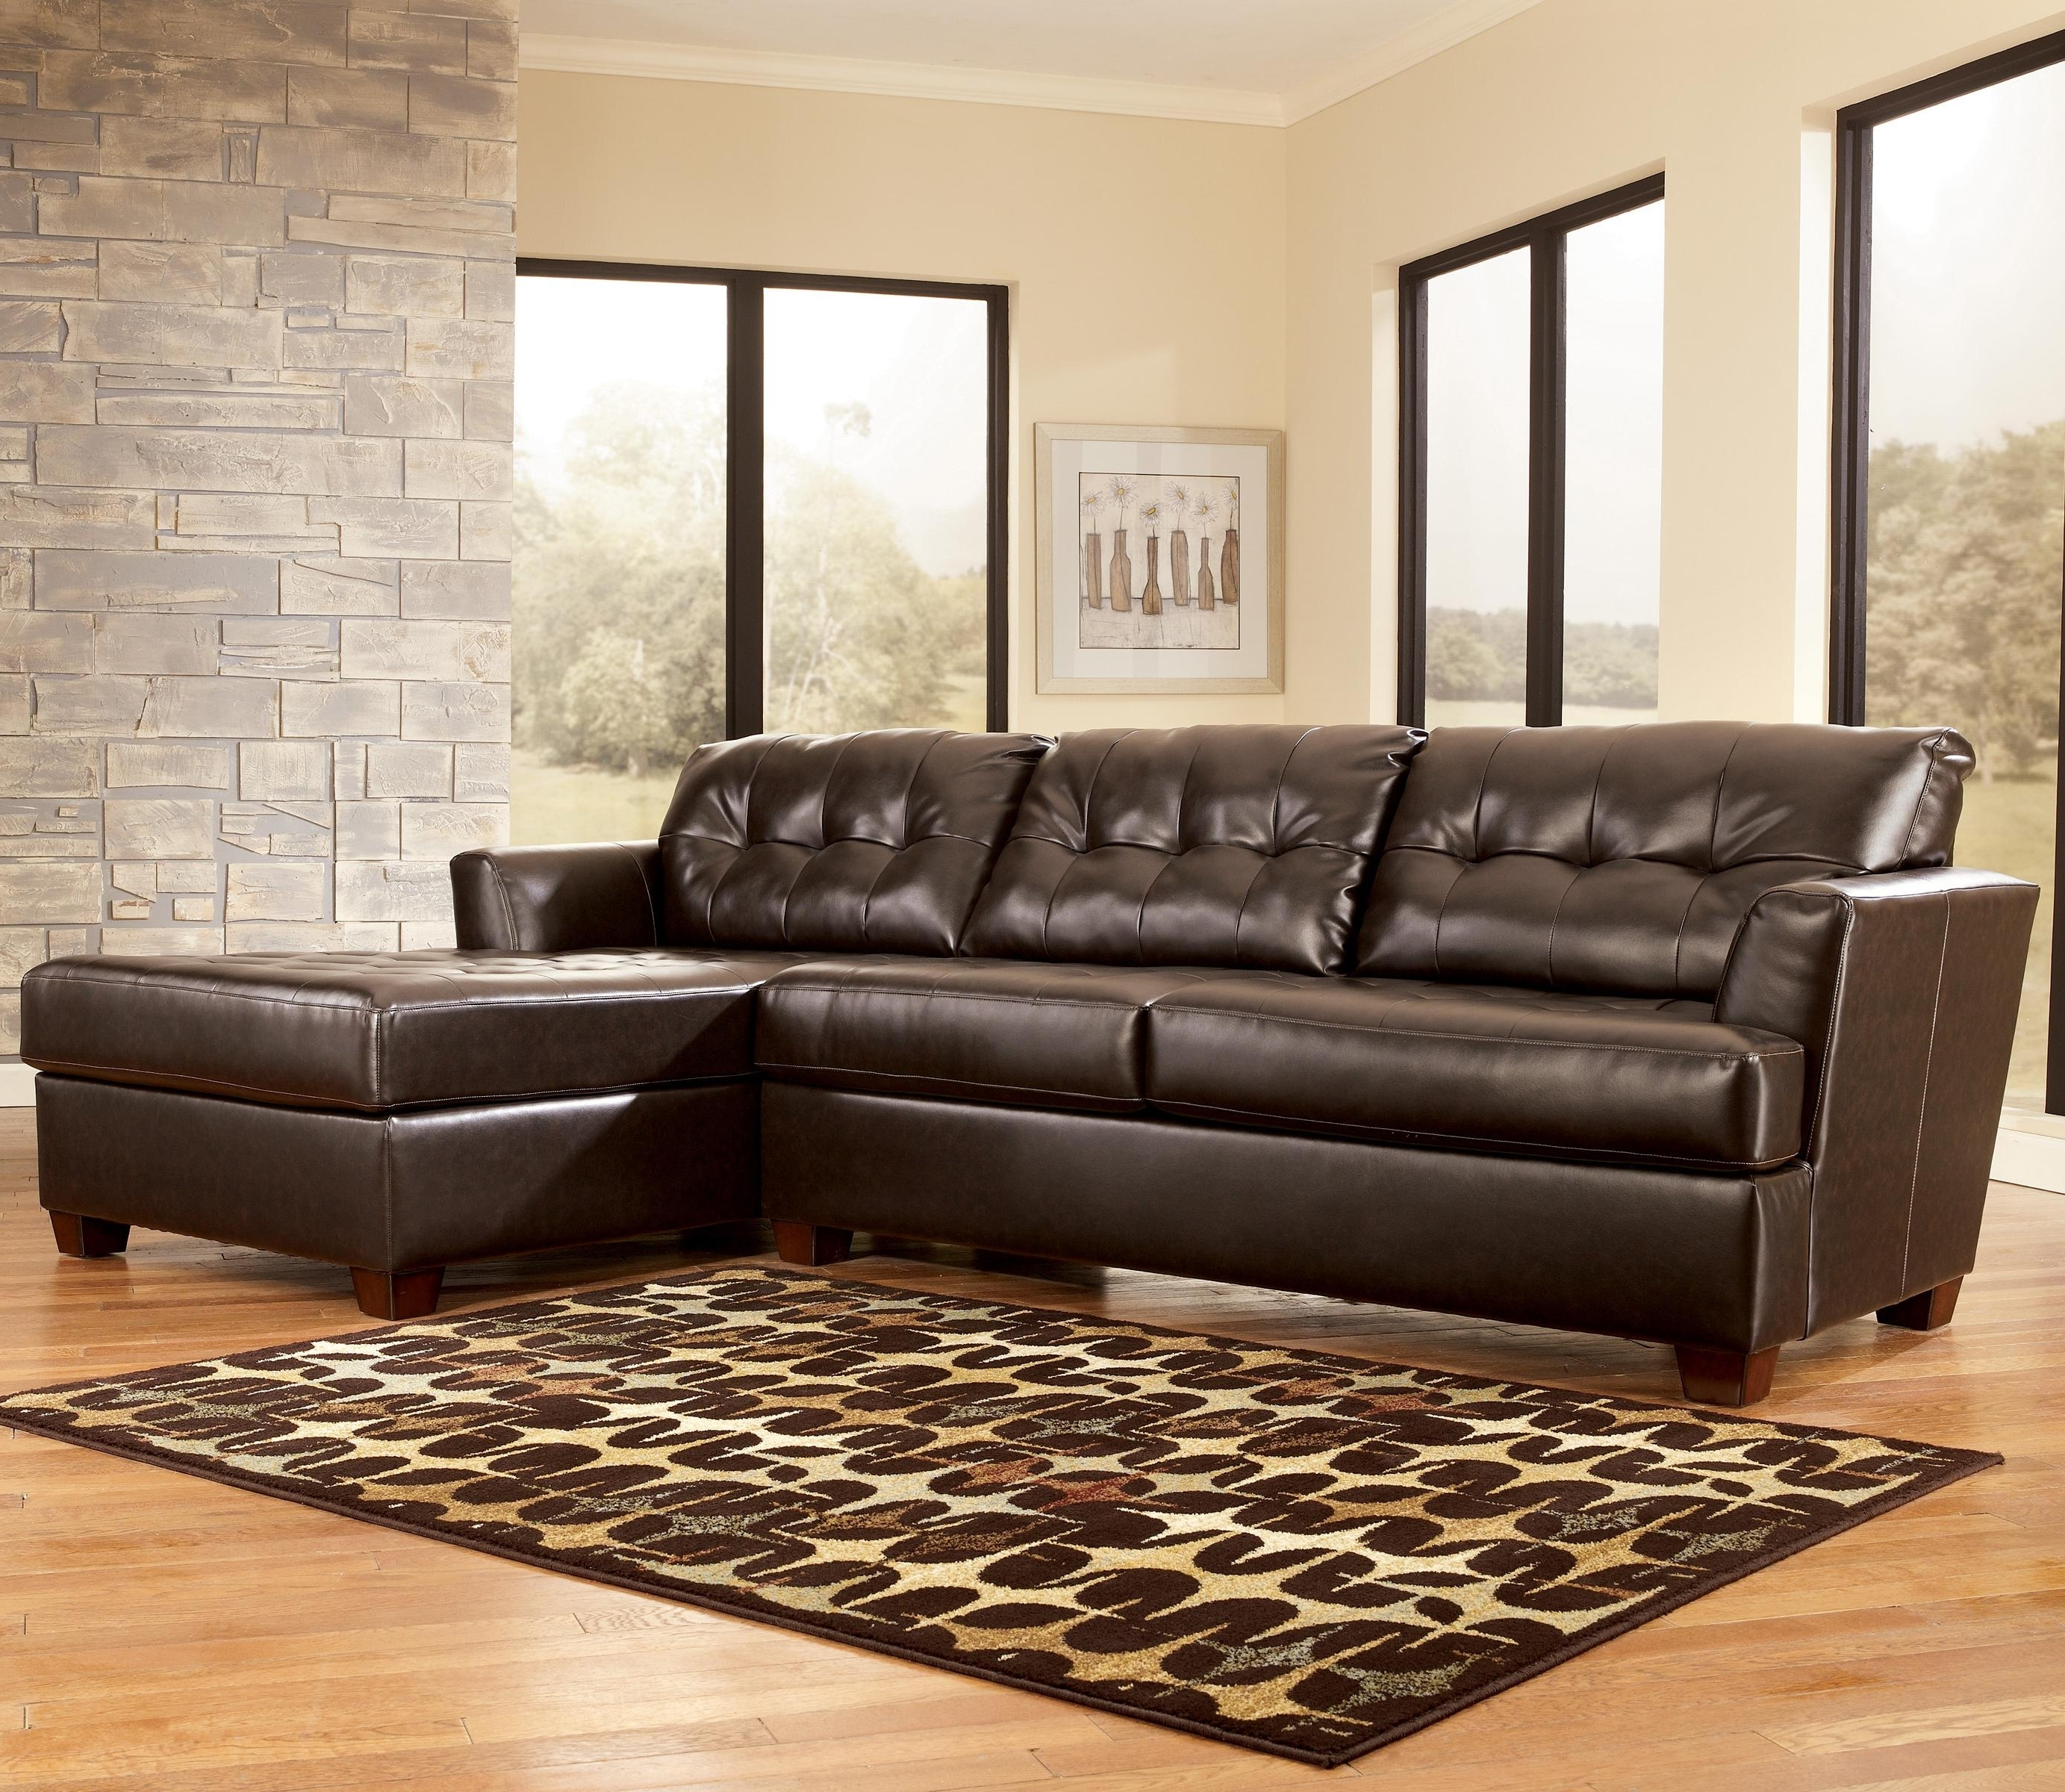 Most Current Homemakers Sectional Sofas Intended For Dixon Durablend – Chocolate Sectional Sofasignature Design (View 2 of 15)